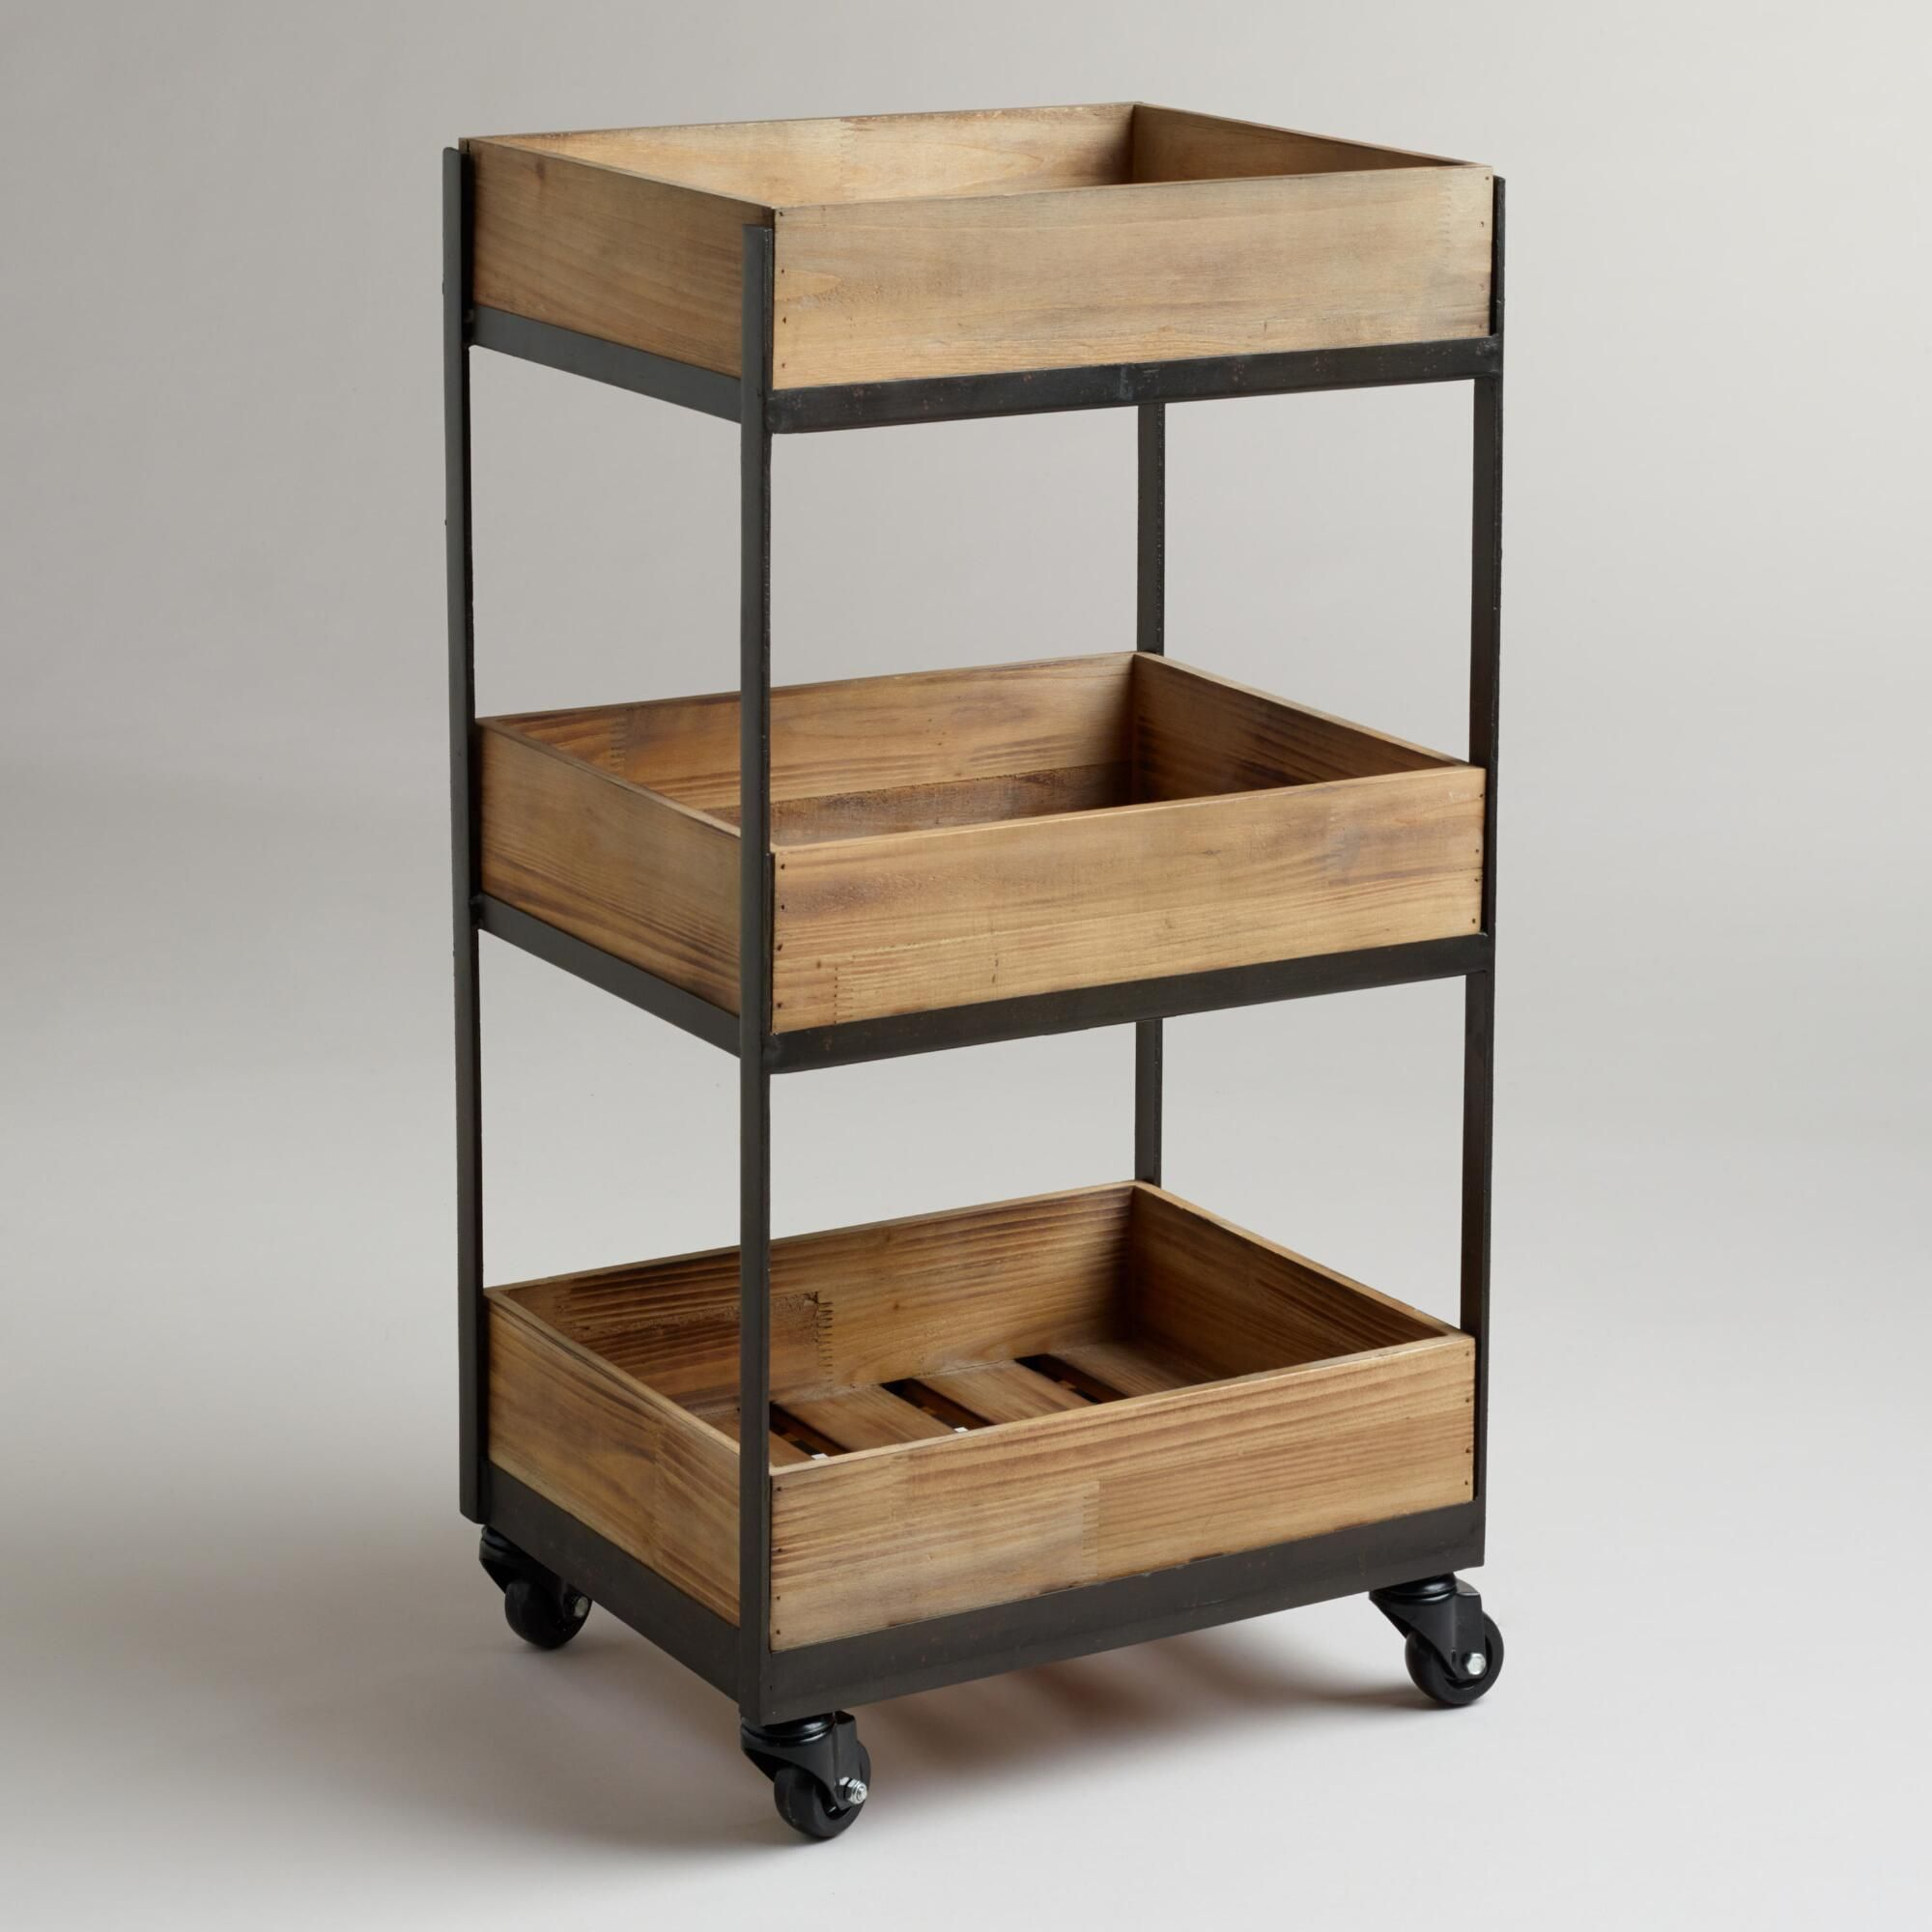 storage top rolling table itm natural kitchen shelf cart wood with utility food prep